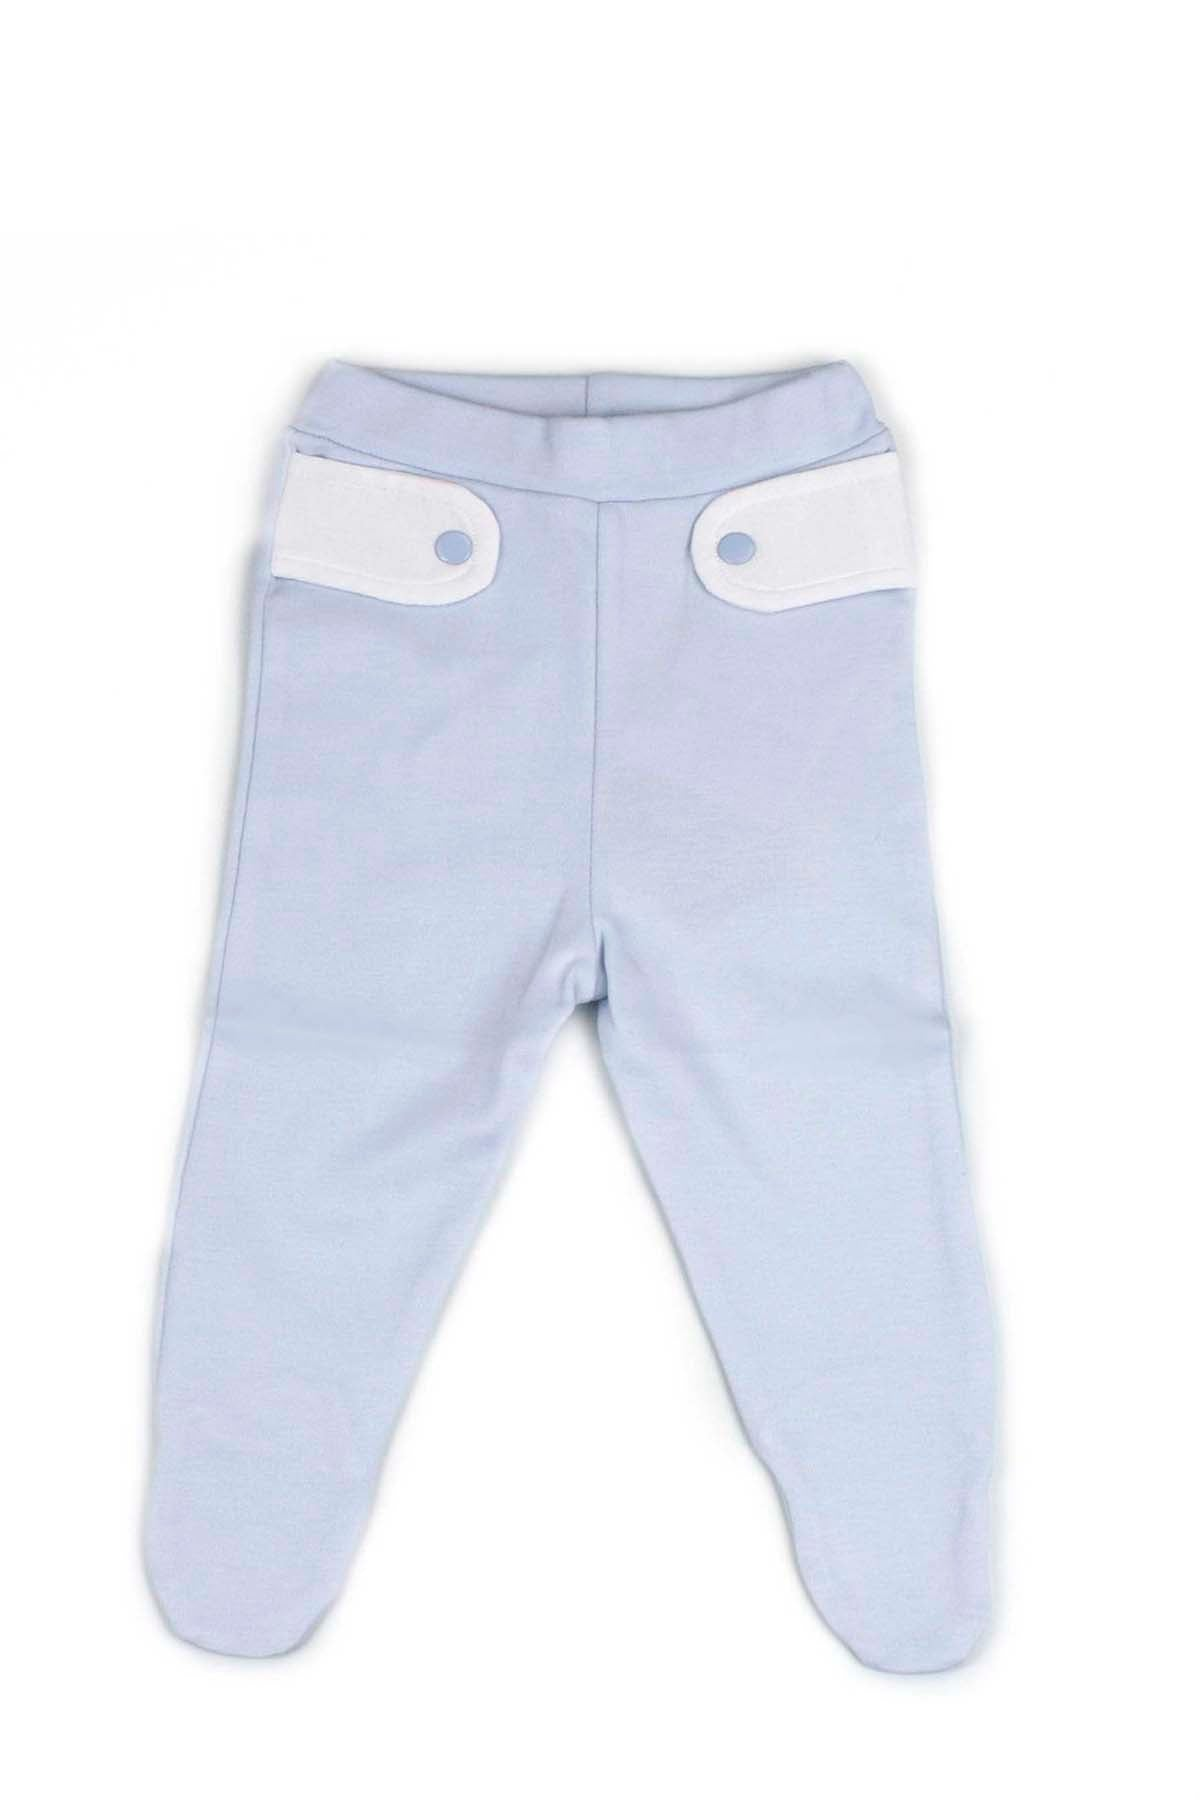 Blue Pants with white details in the top Pima Cotton